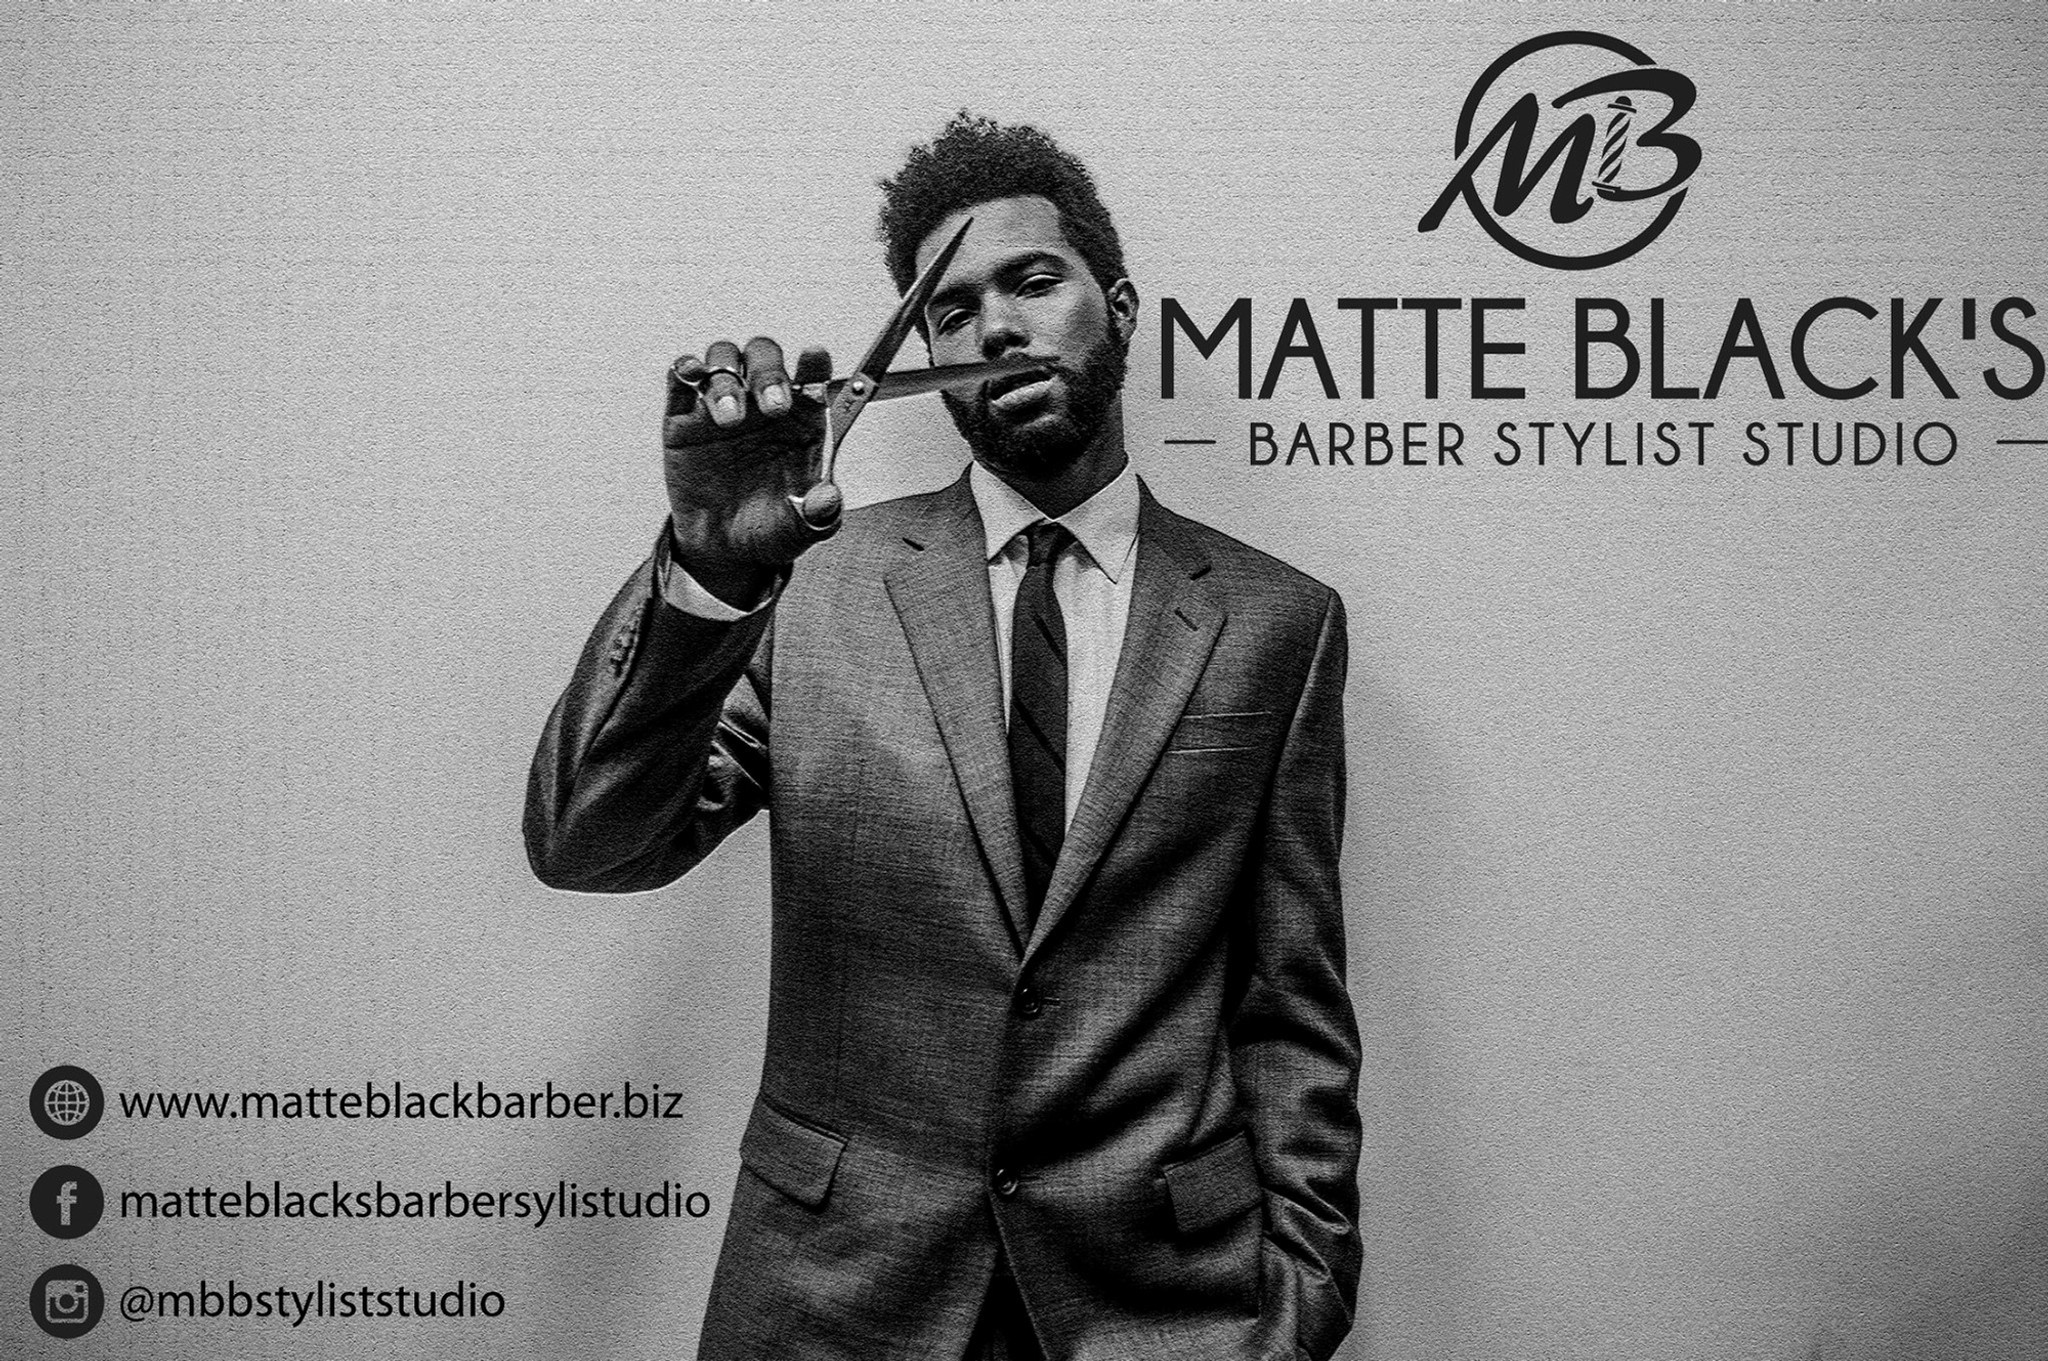 Haircut from Master Barber